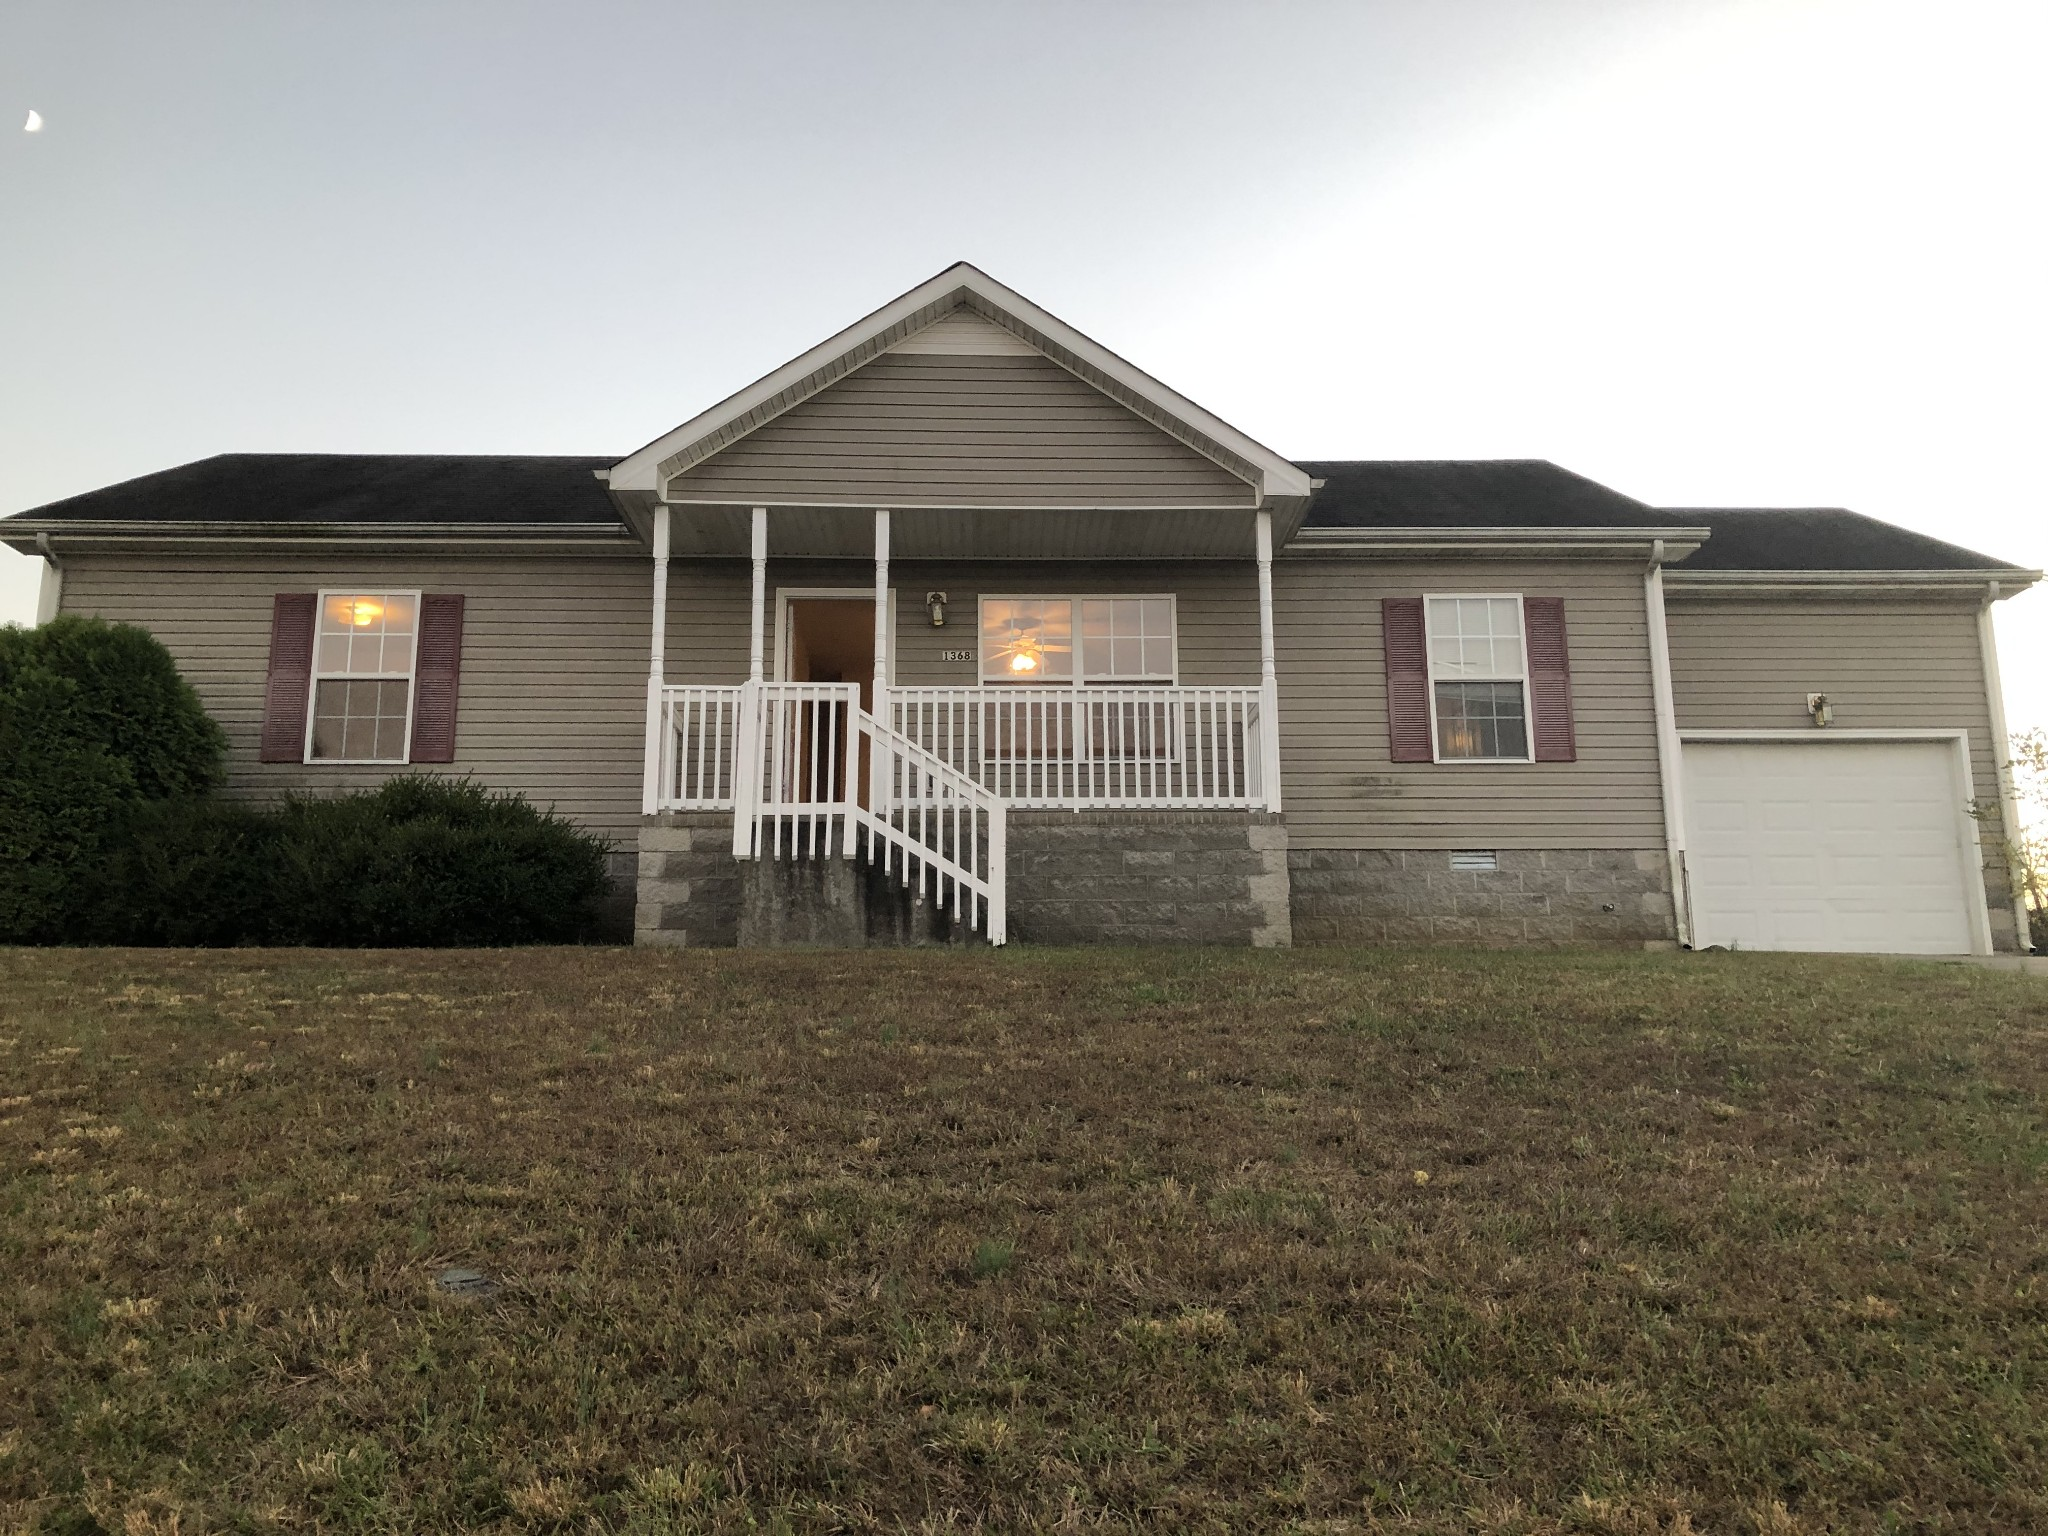 1368 William Suiters Ln Property Photo - Clarksville, TN real estate listing